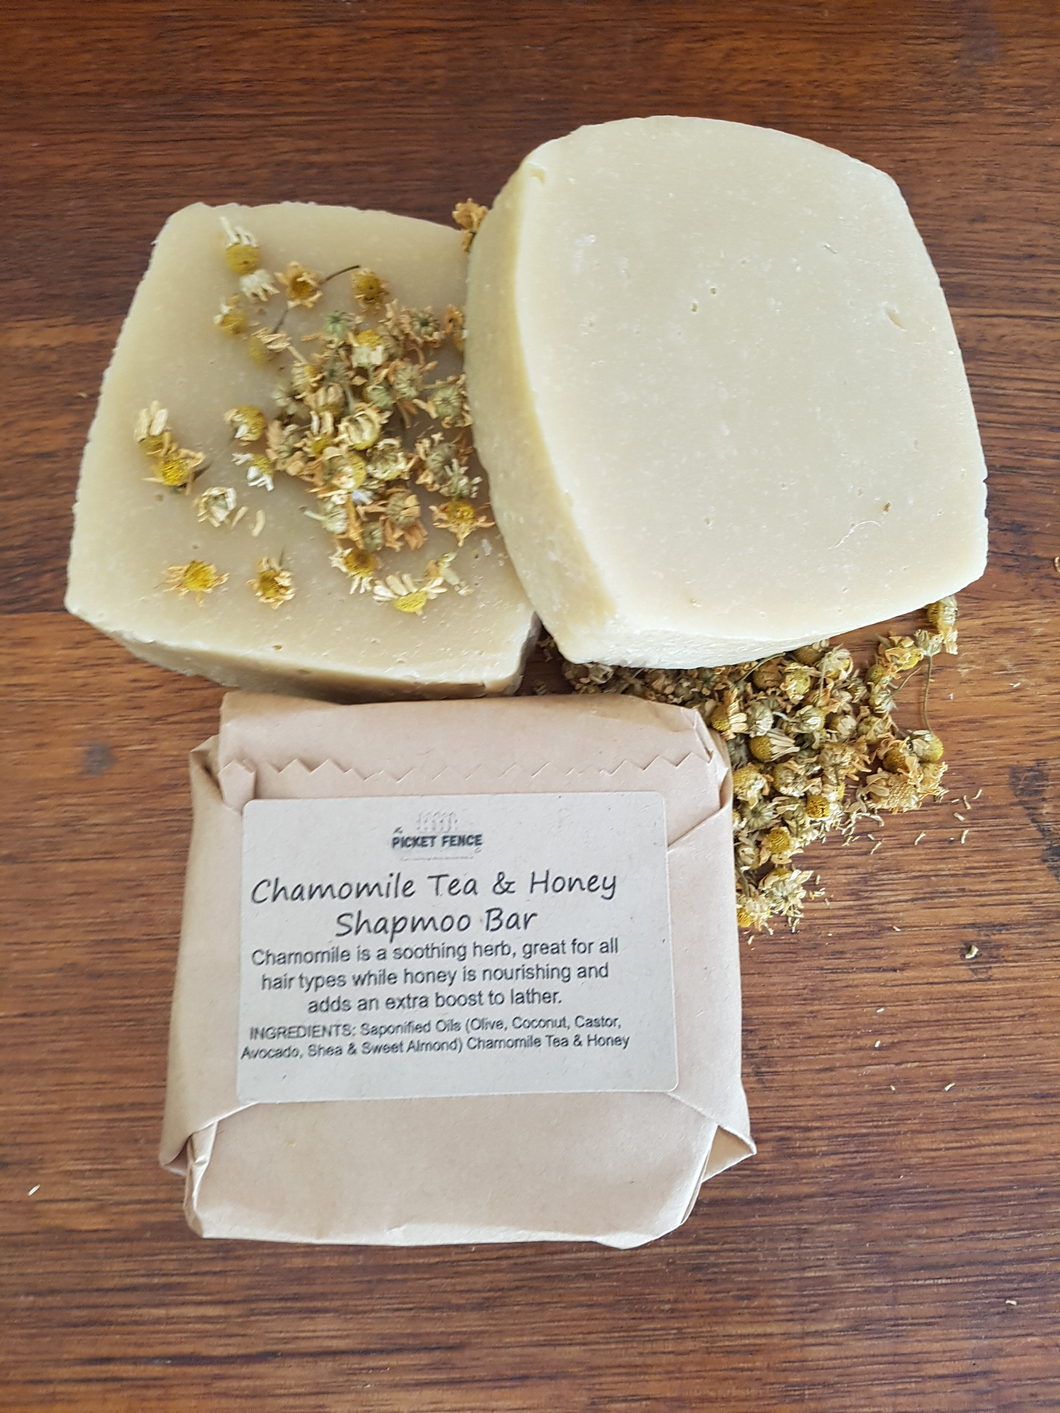 Chamomile Tea & Honey Shampoo Bar